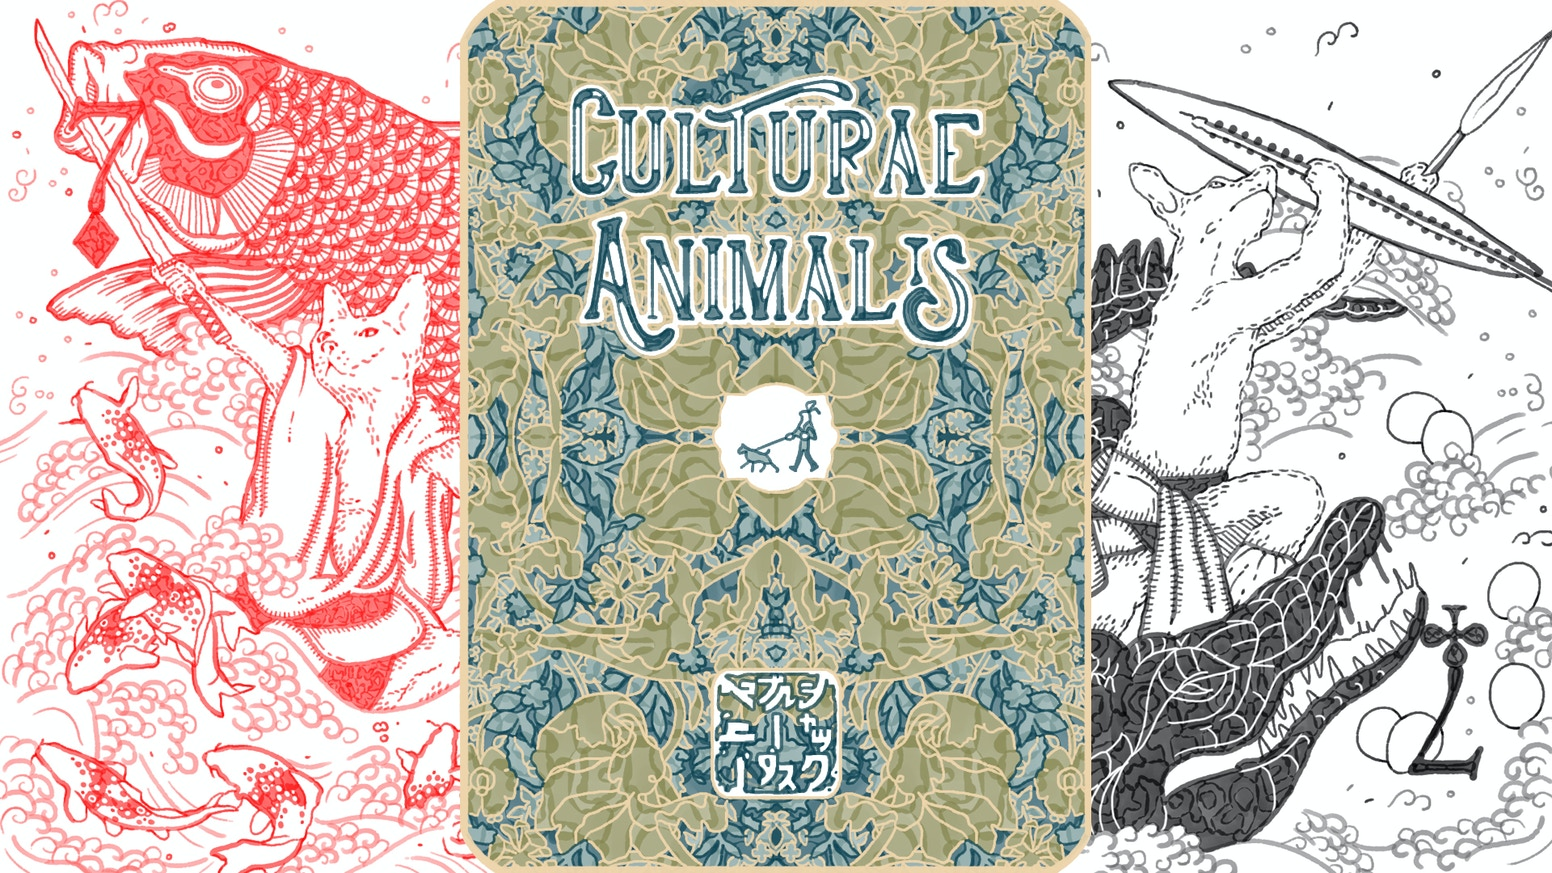 A deck of hand-drawn art playing cards inspired by world cultures and wildlife. Printed by Expert Playing Card Company (EPCC)